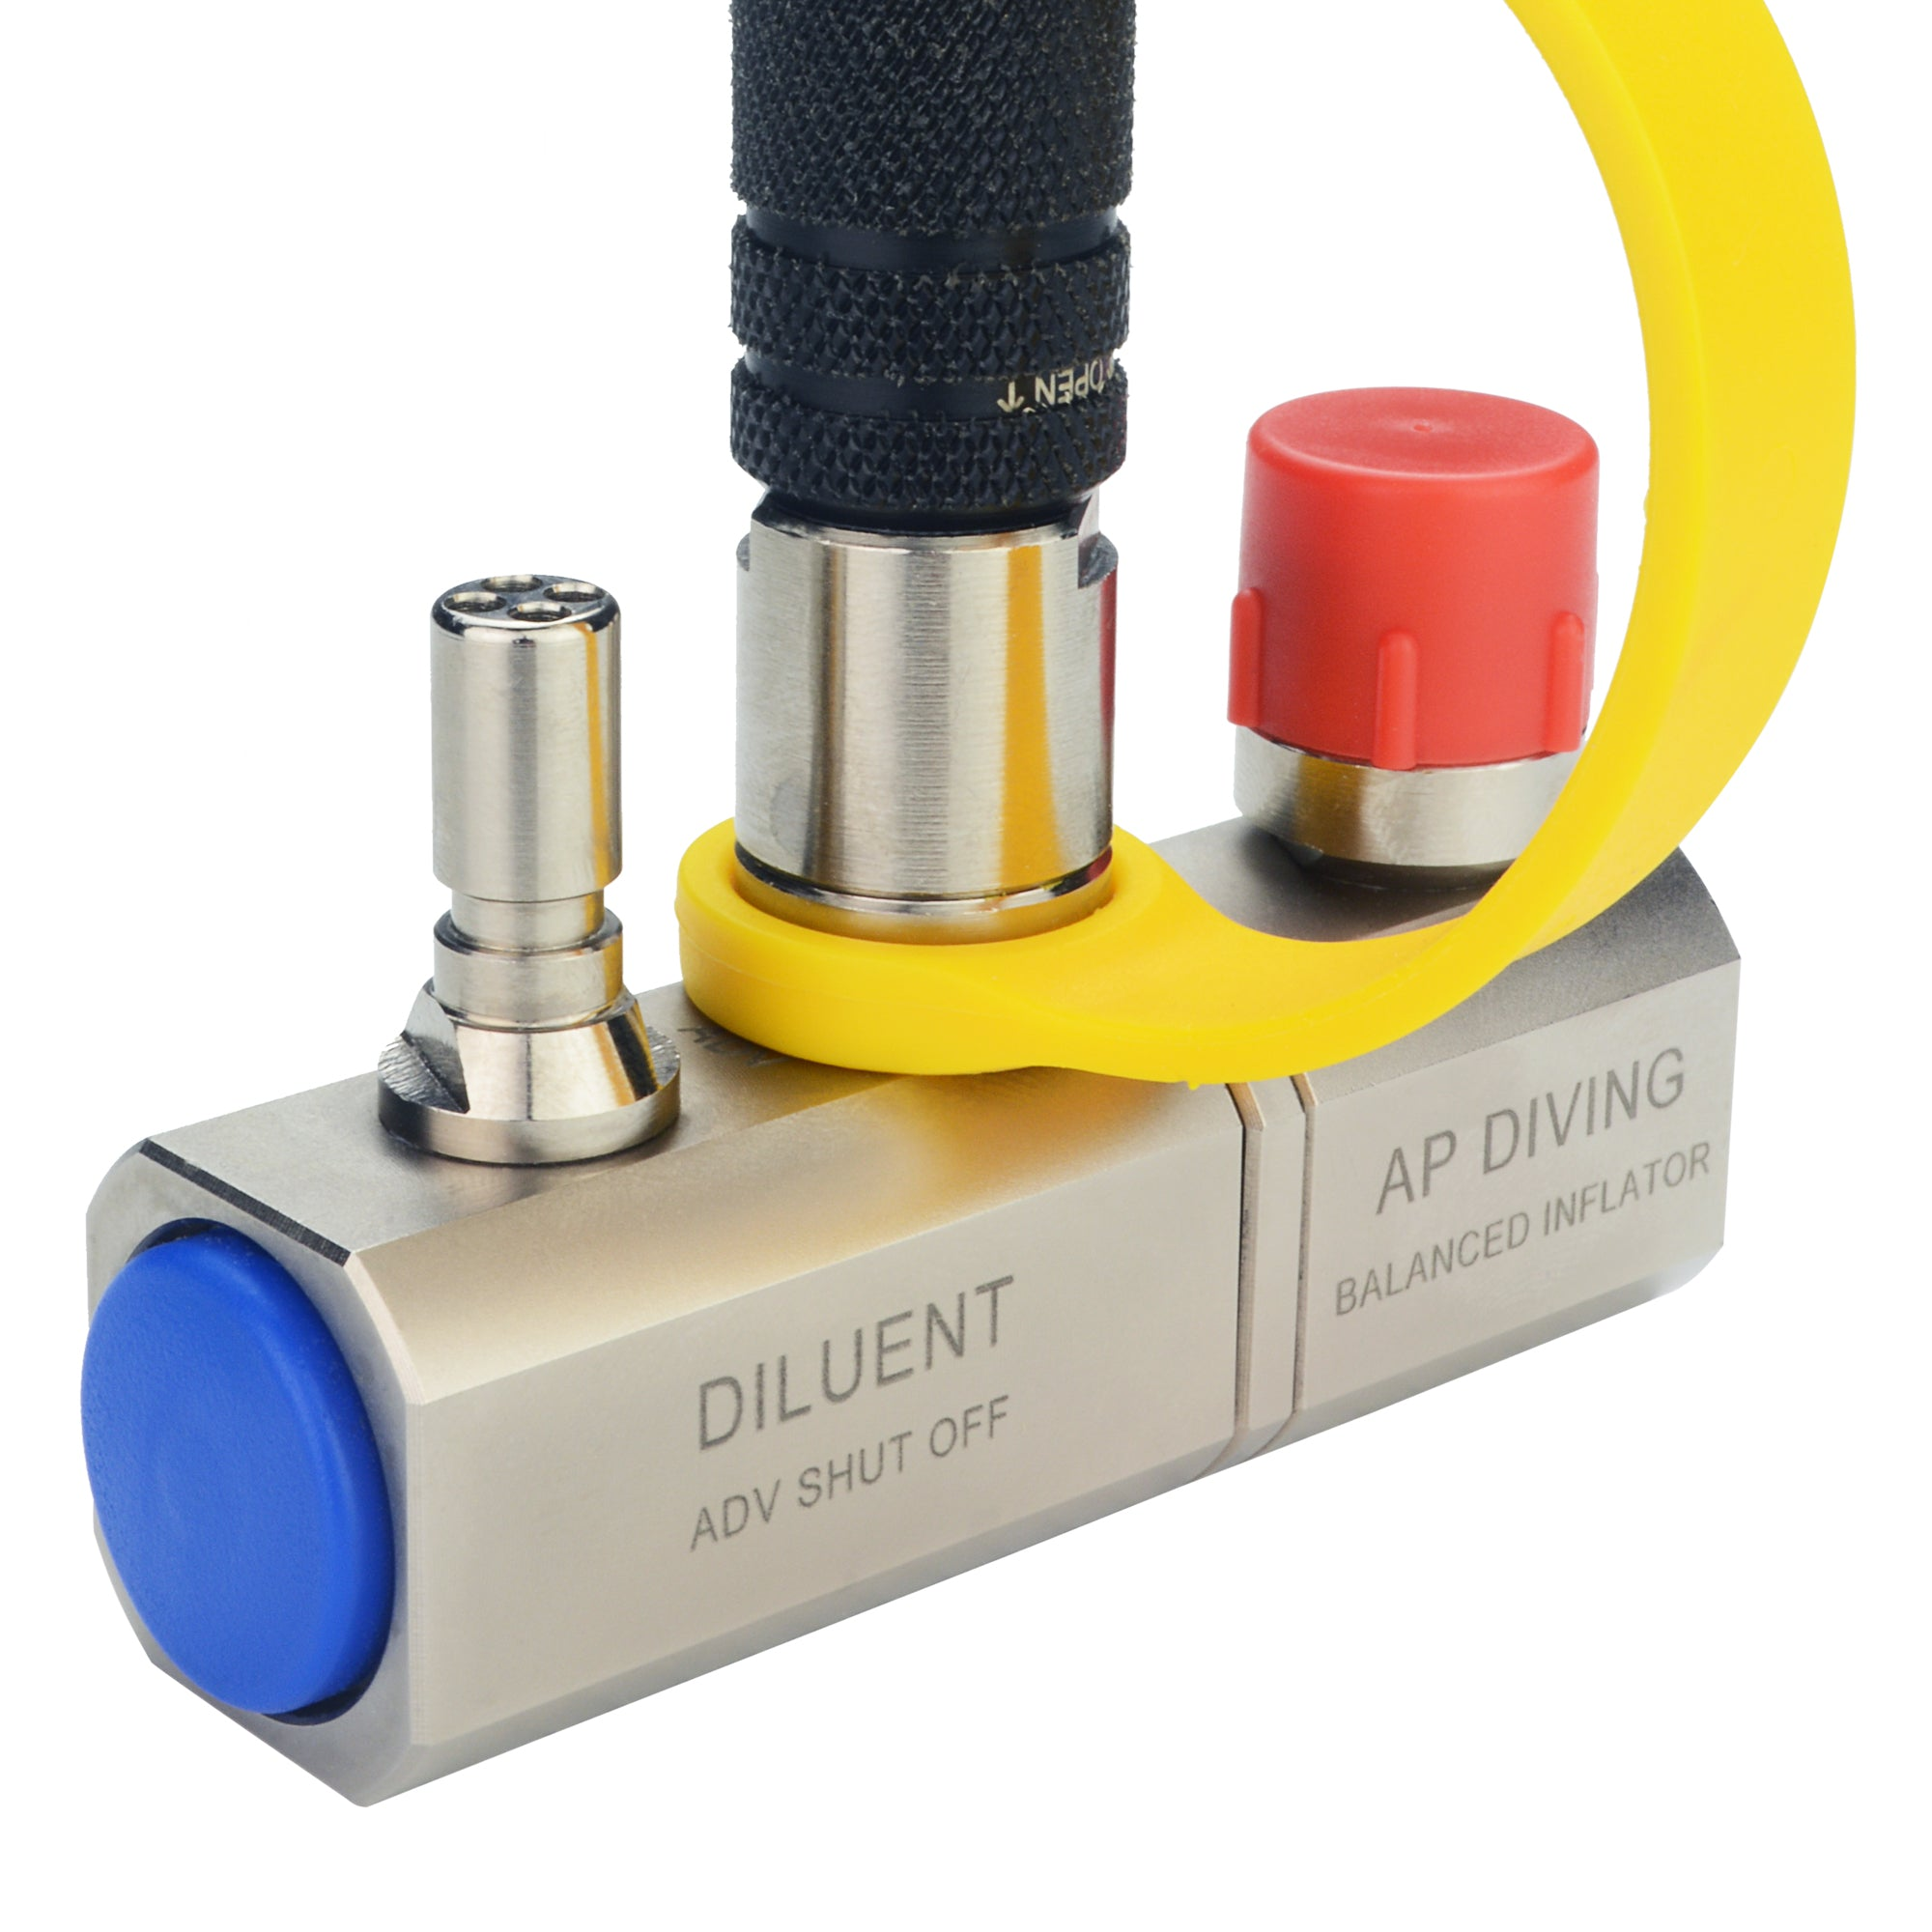 RBV07/SO/35S - Single Diluent Inflator with ADV Shutoff Valve| AP Diving | Silent Diving | Scuba Rebreather